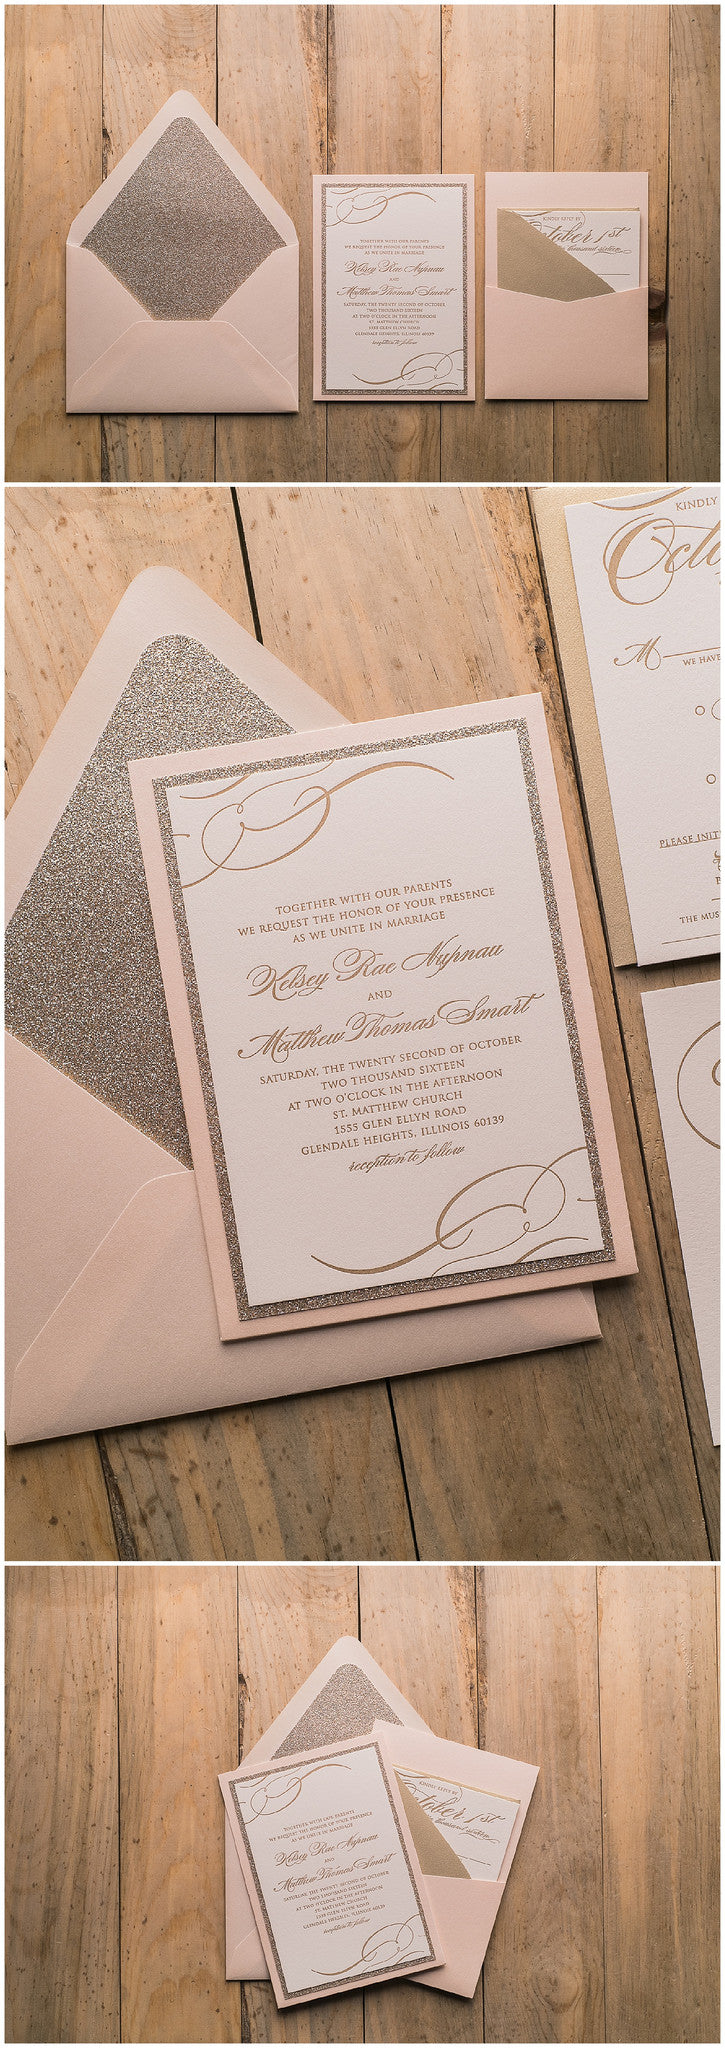 Blush, gold, gold glitter, blush and gold, letterpress, calligraphy, panel pocket, wedding invitations, fancy, elegant, real wedding